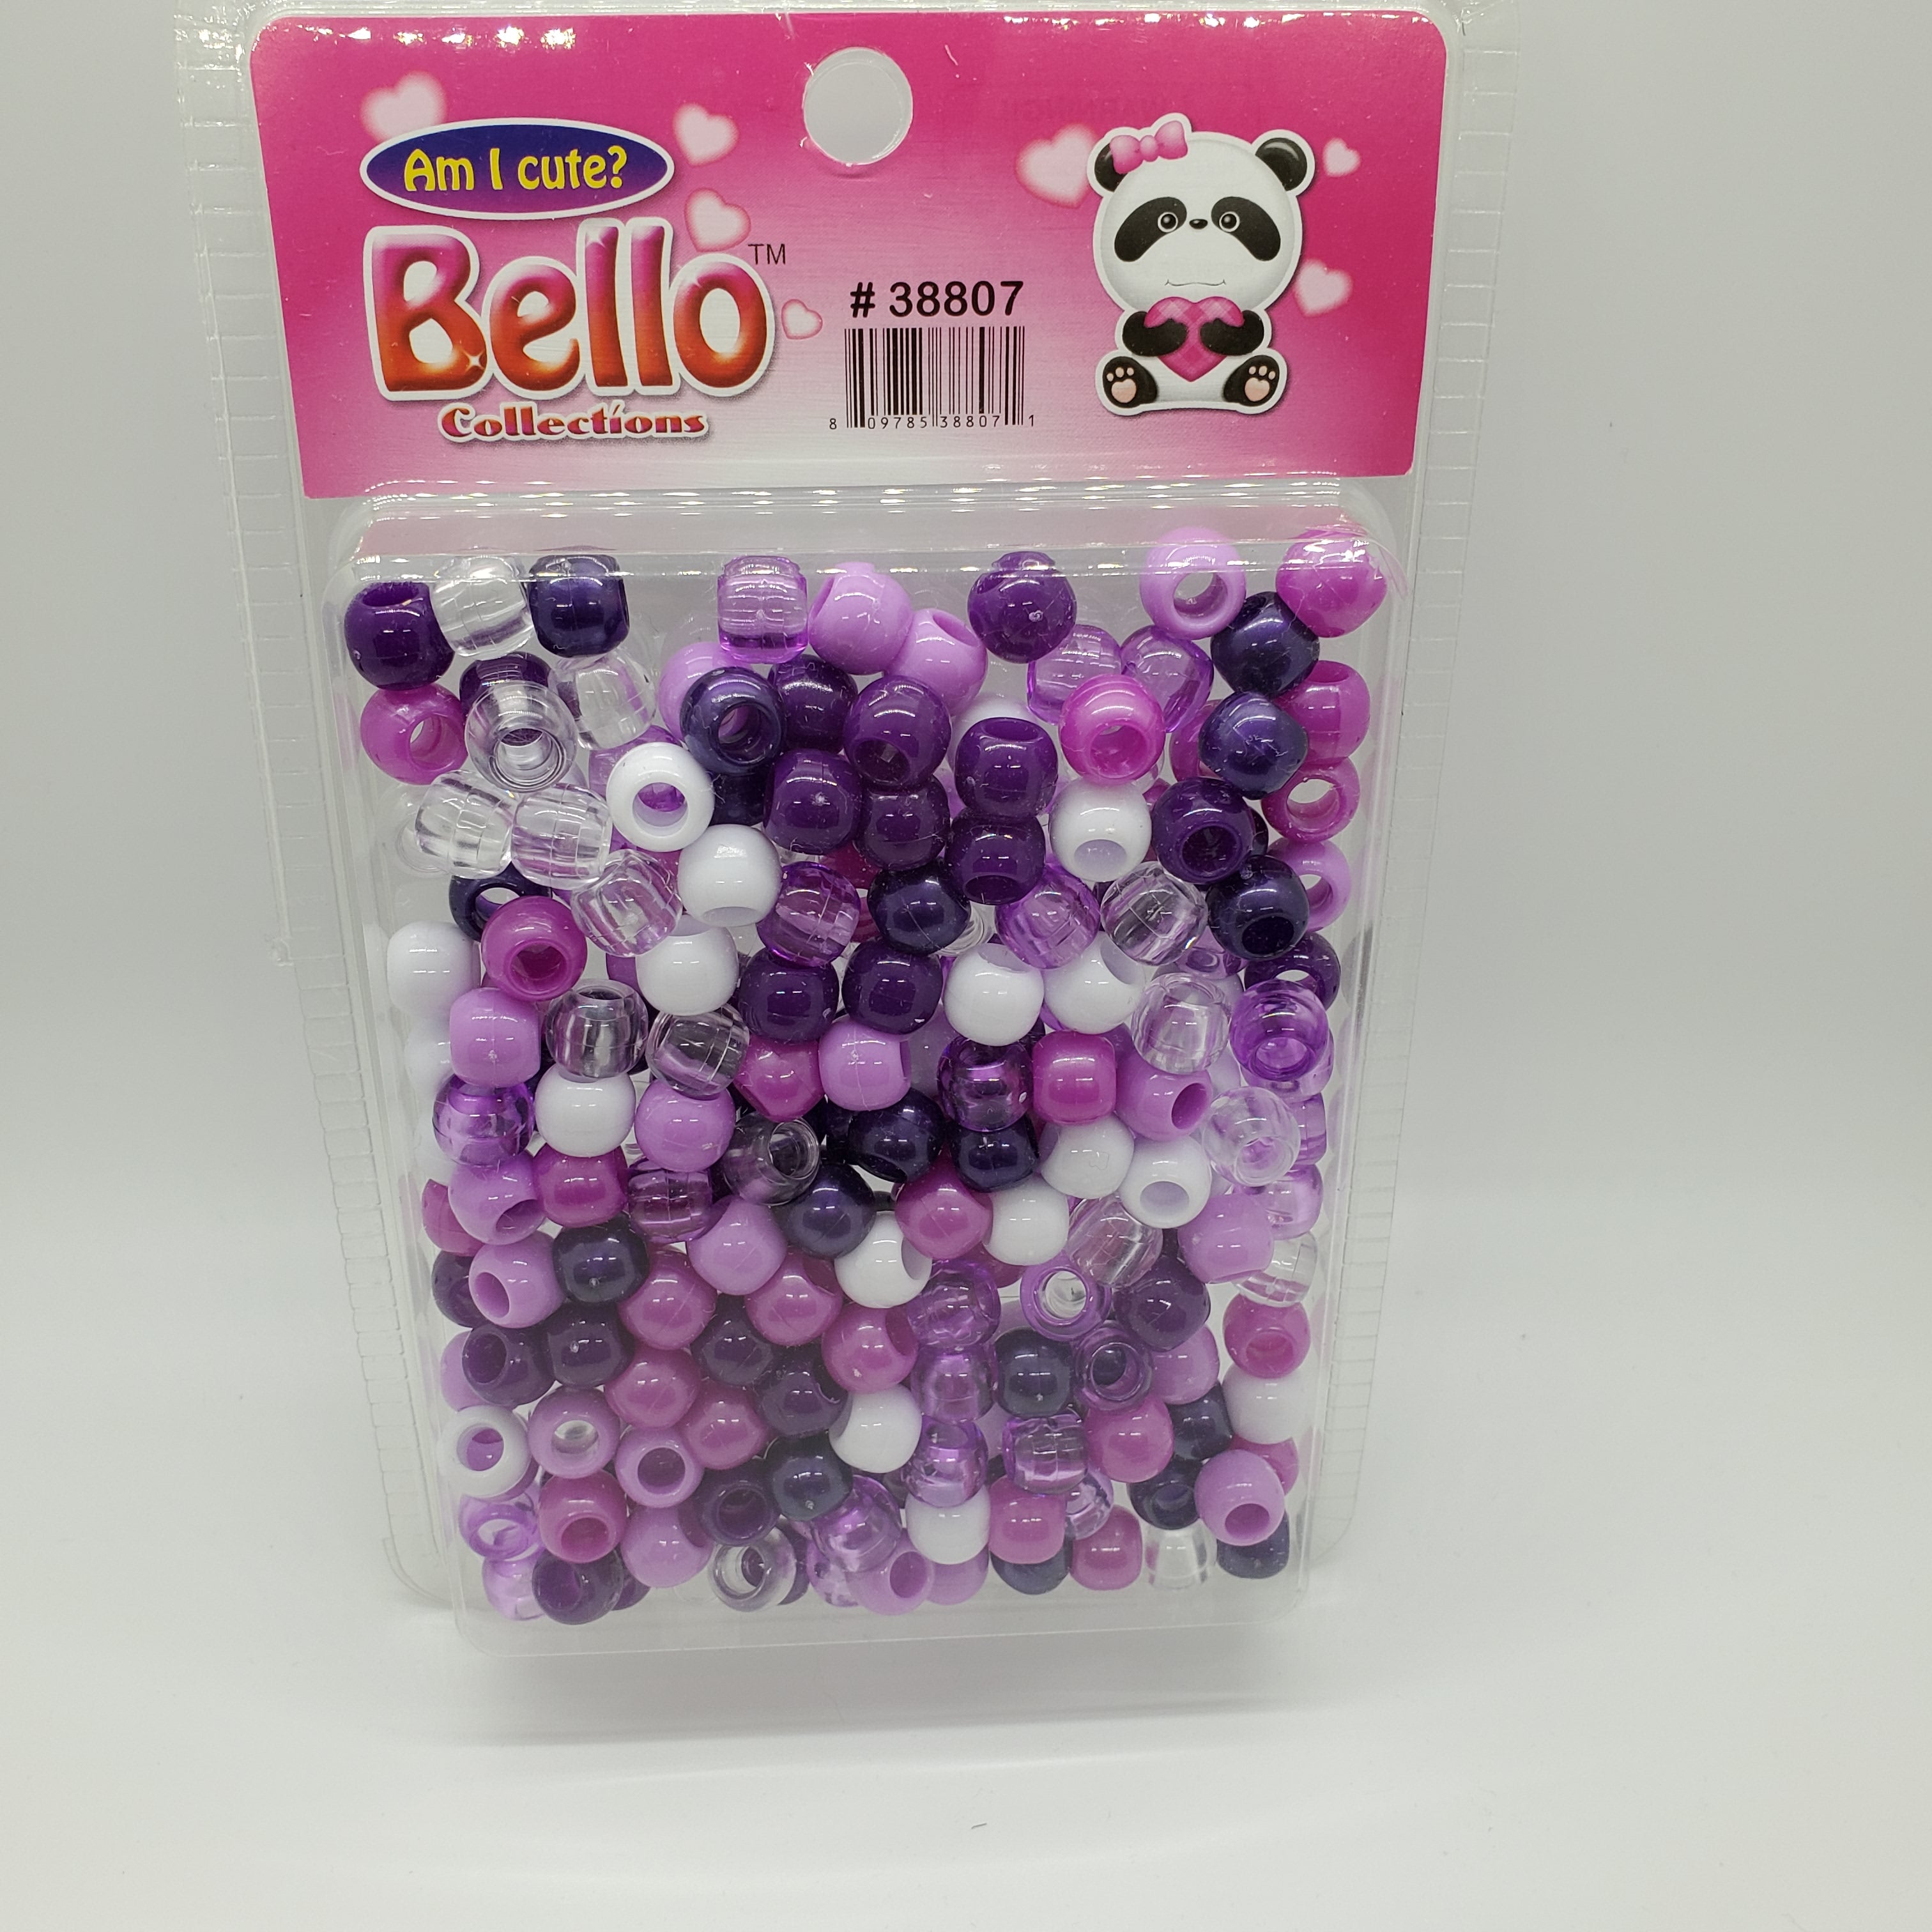 Bello Collection Beads Clear/White/Purple #38807 - Beauty Bar & Supply